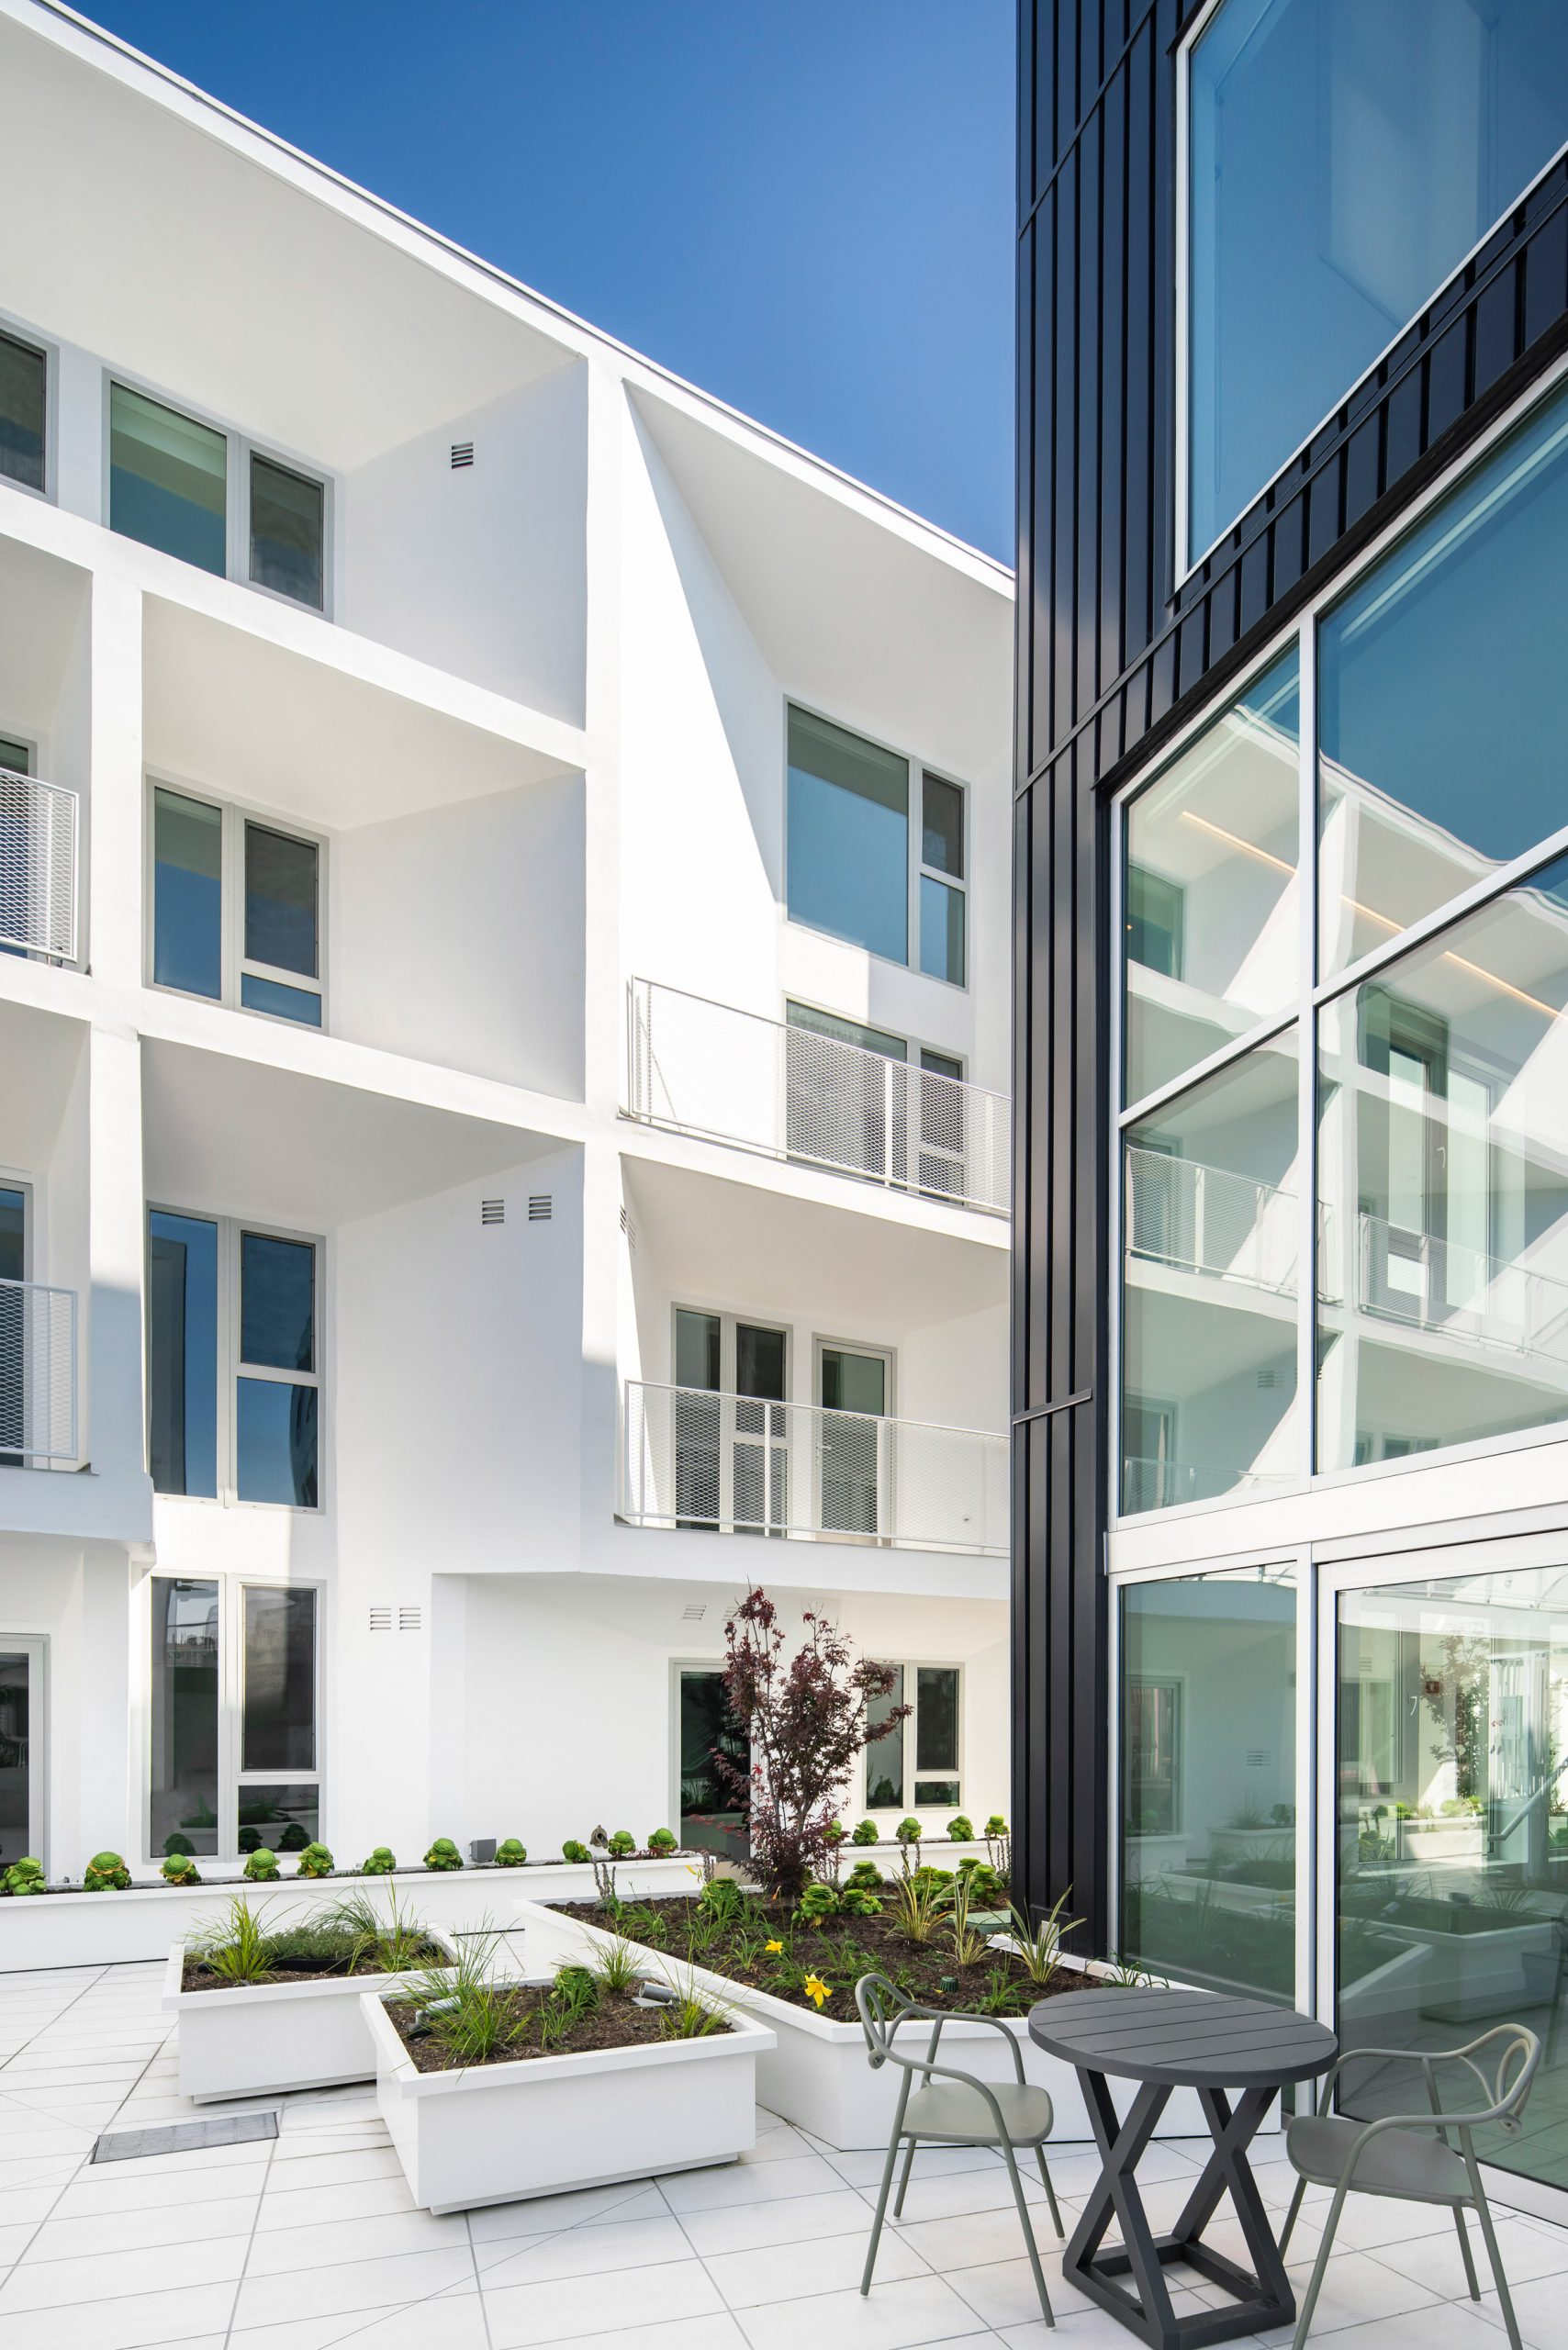 Westgate1515 by LOHA is a black and white apartment block